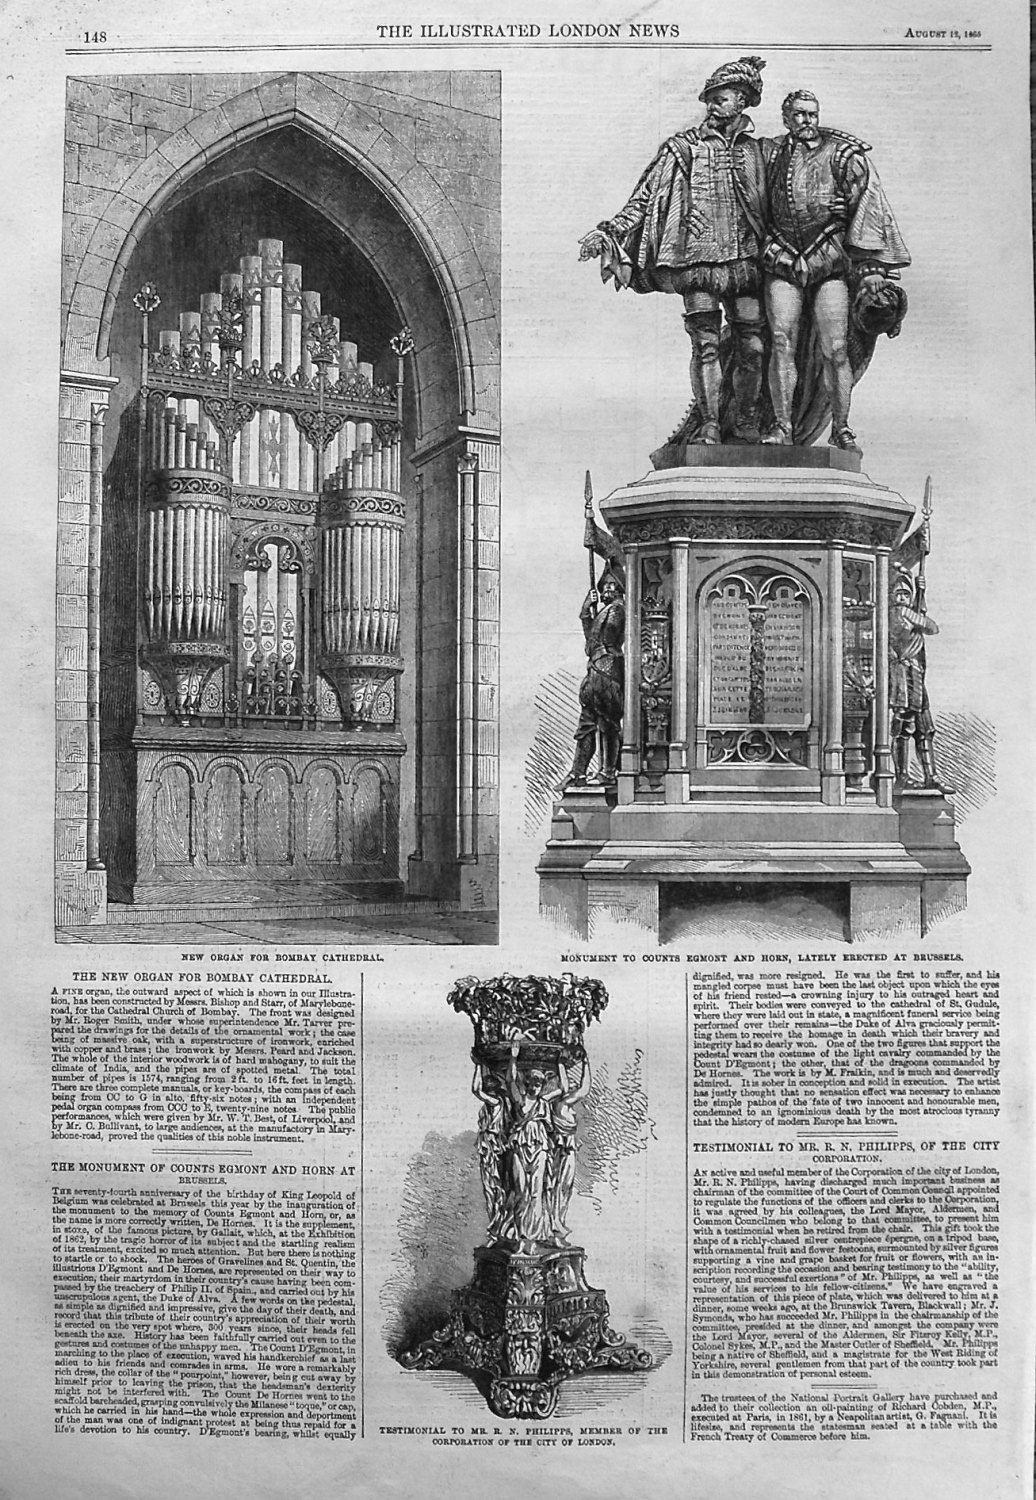 New Organ for Bombay Cathedral. 1865